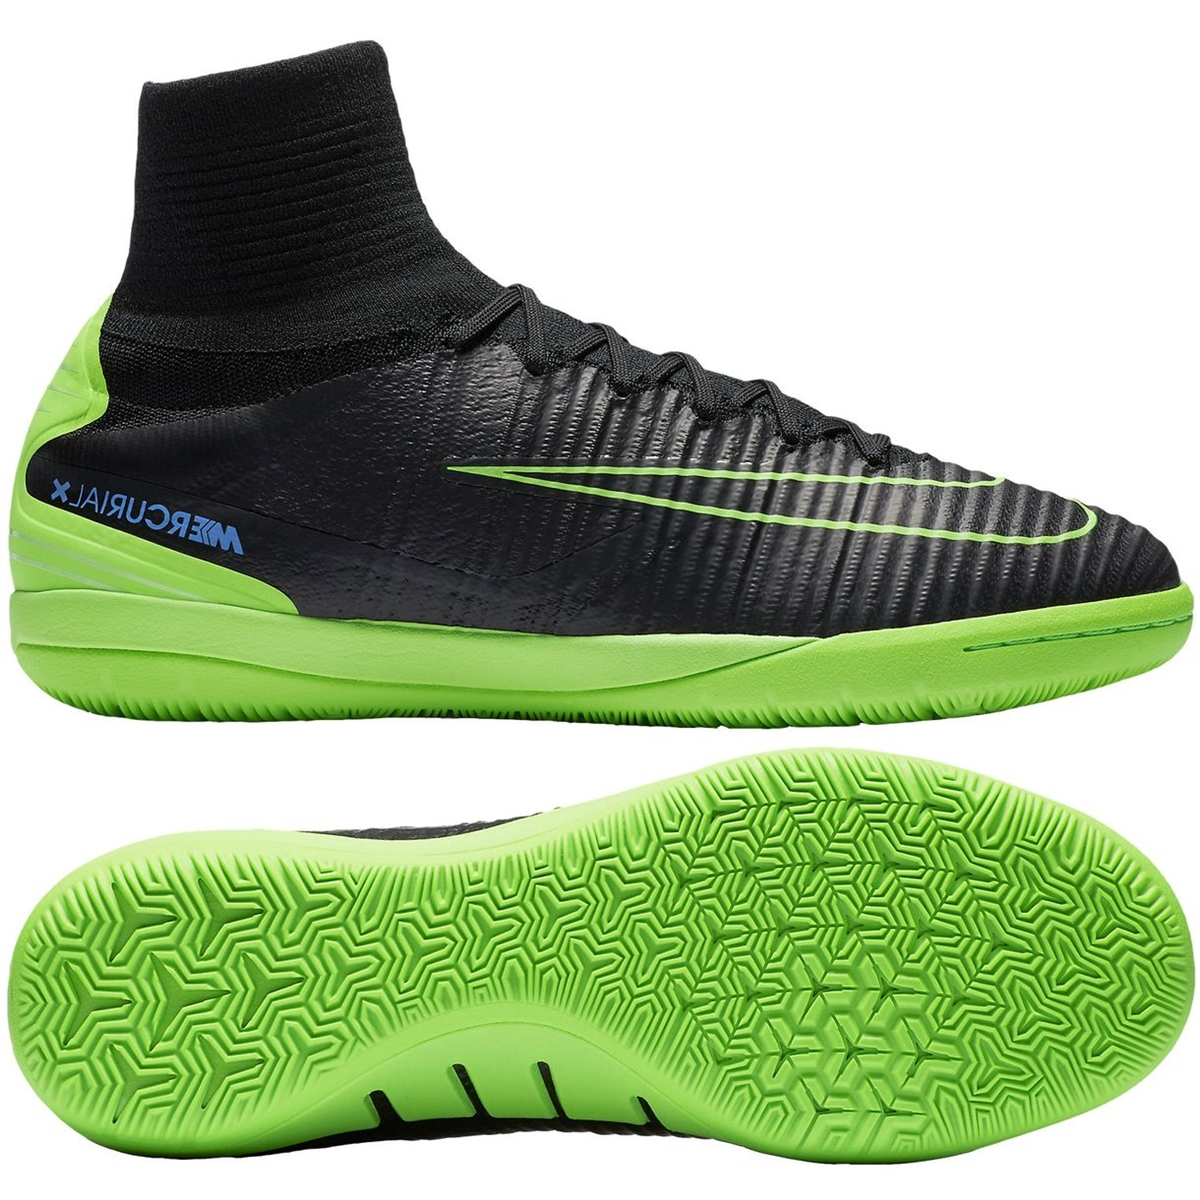 50bc3f156e18 Nike MercurialX Proximo II IC Indoor Soccer Shoes (Black/Electric  Green/Paramount Blue) | Nike Indoor Soccer Shoes | Nike SCCRX | Nike  FootballX ...